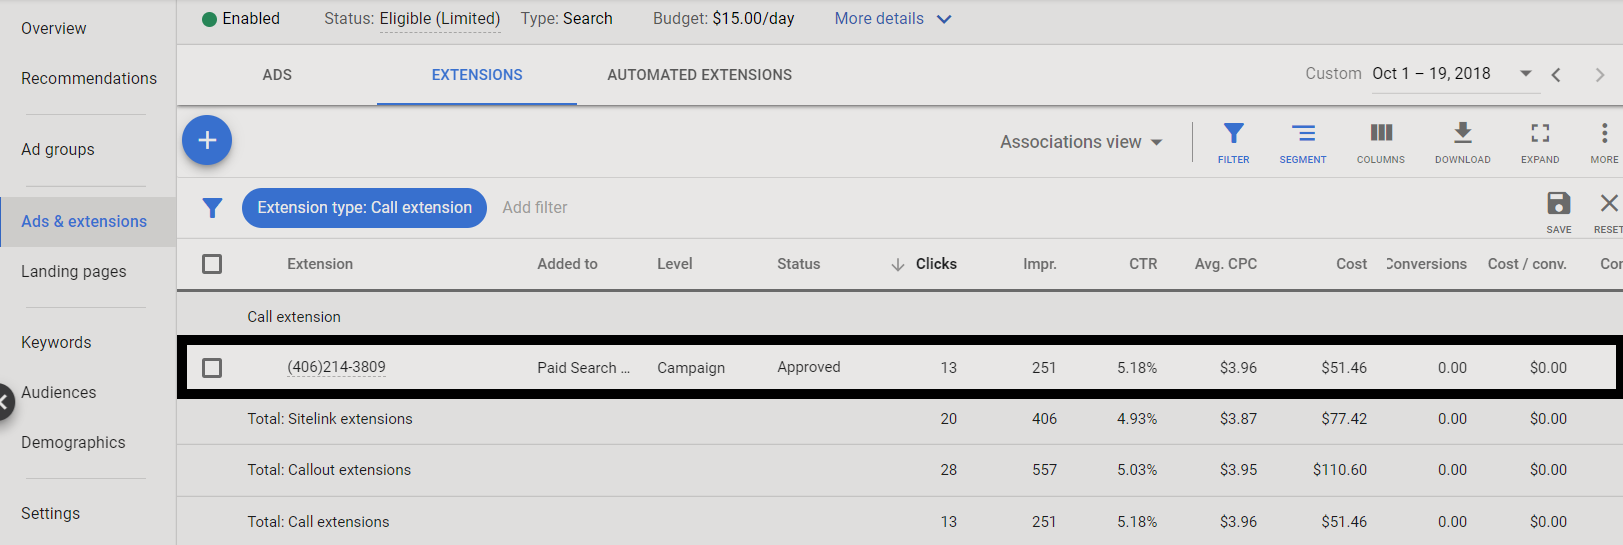 Call extension data on Google Ads search campaign